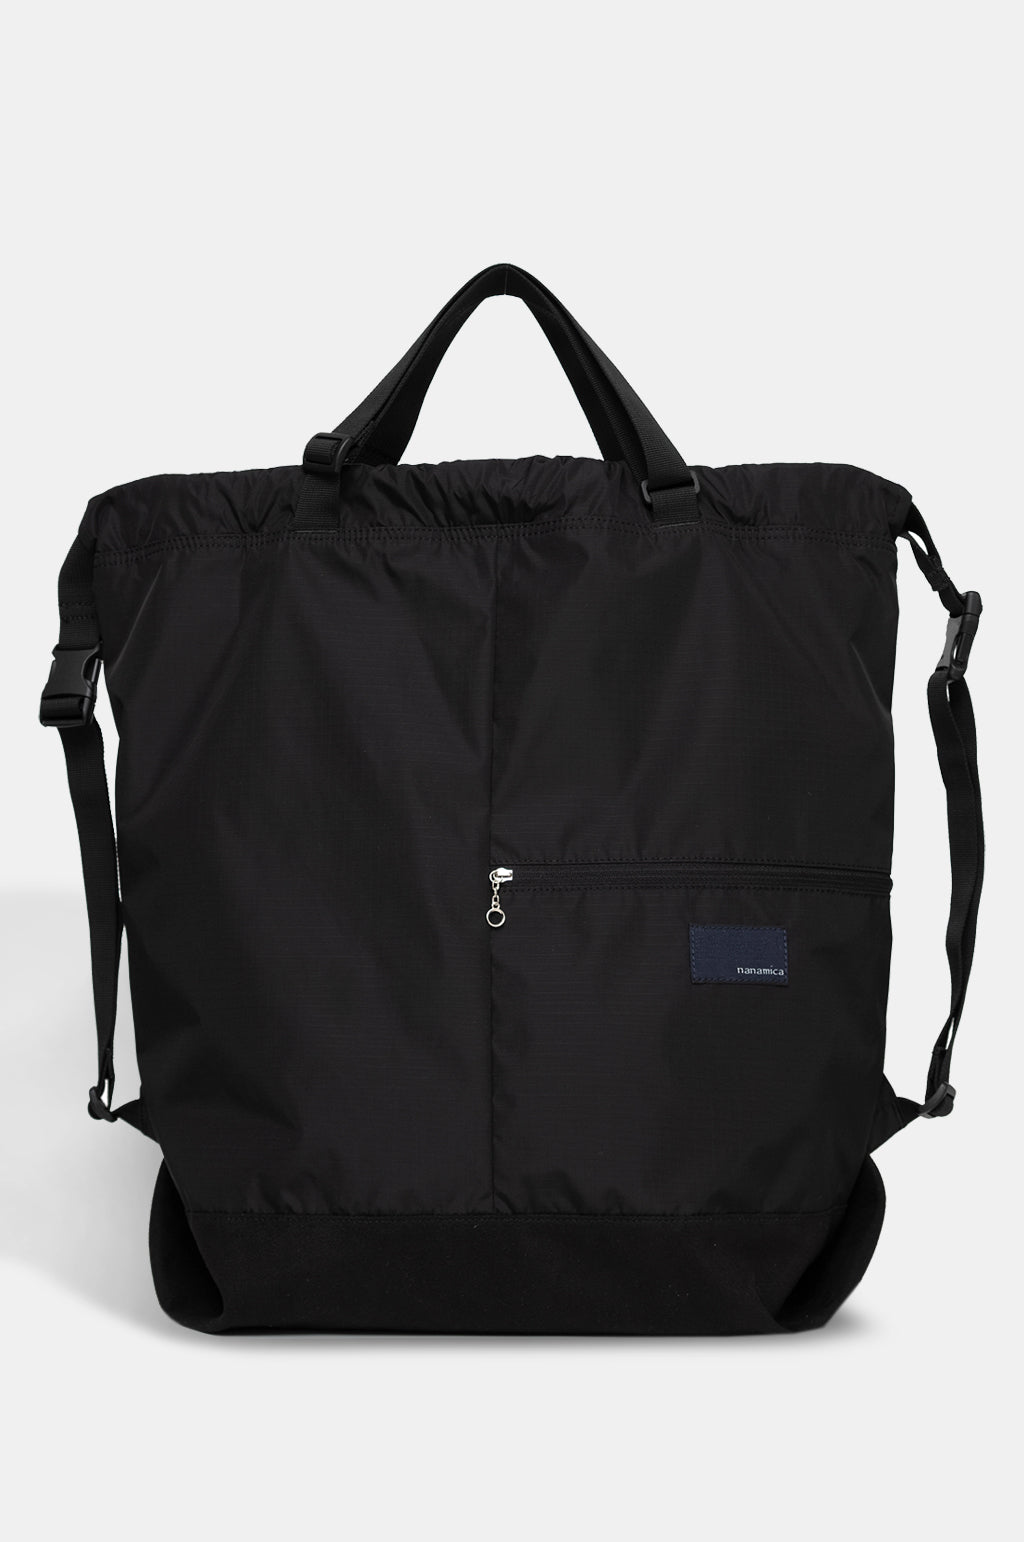 2way Shoulder Bag in Black